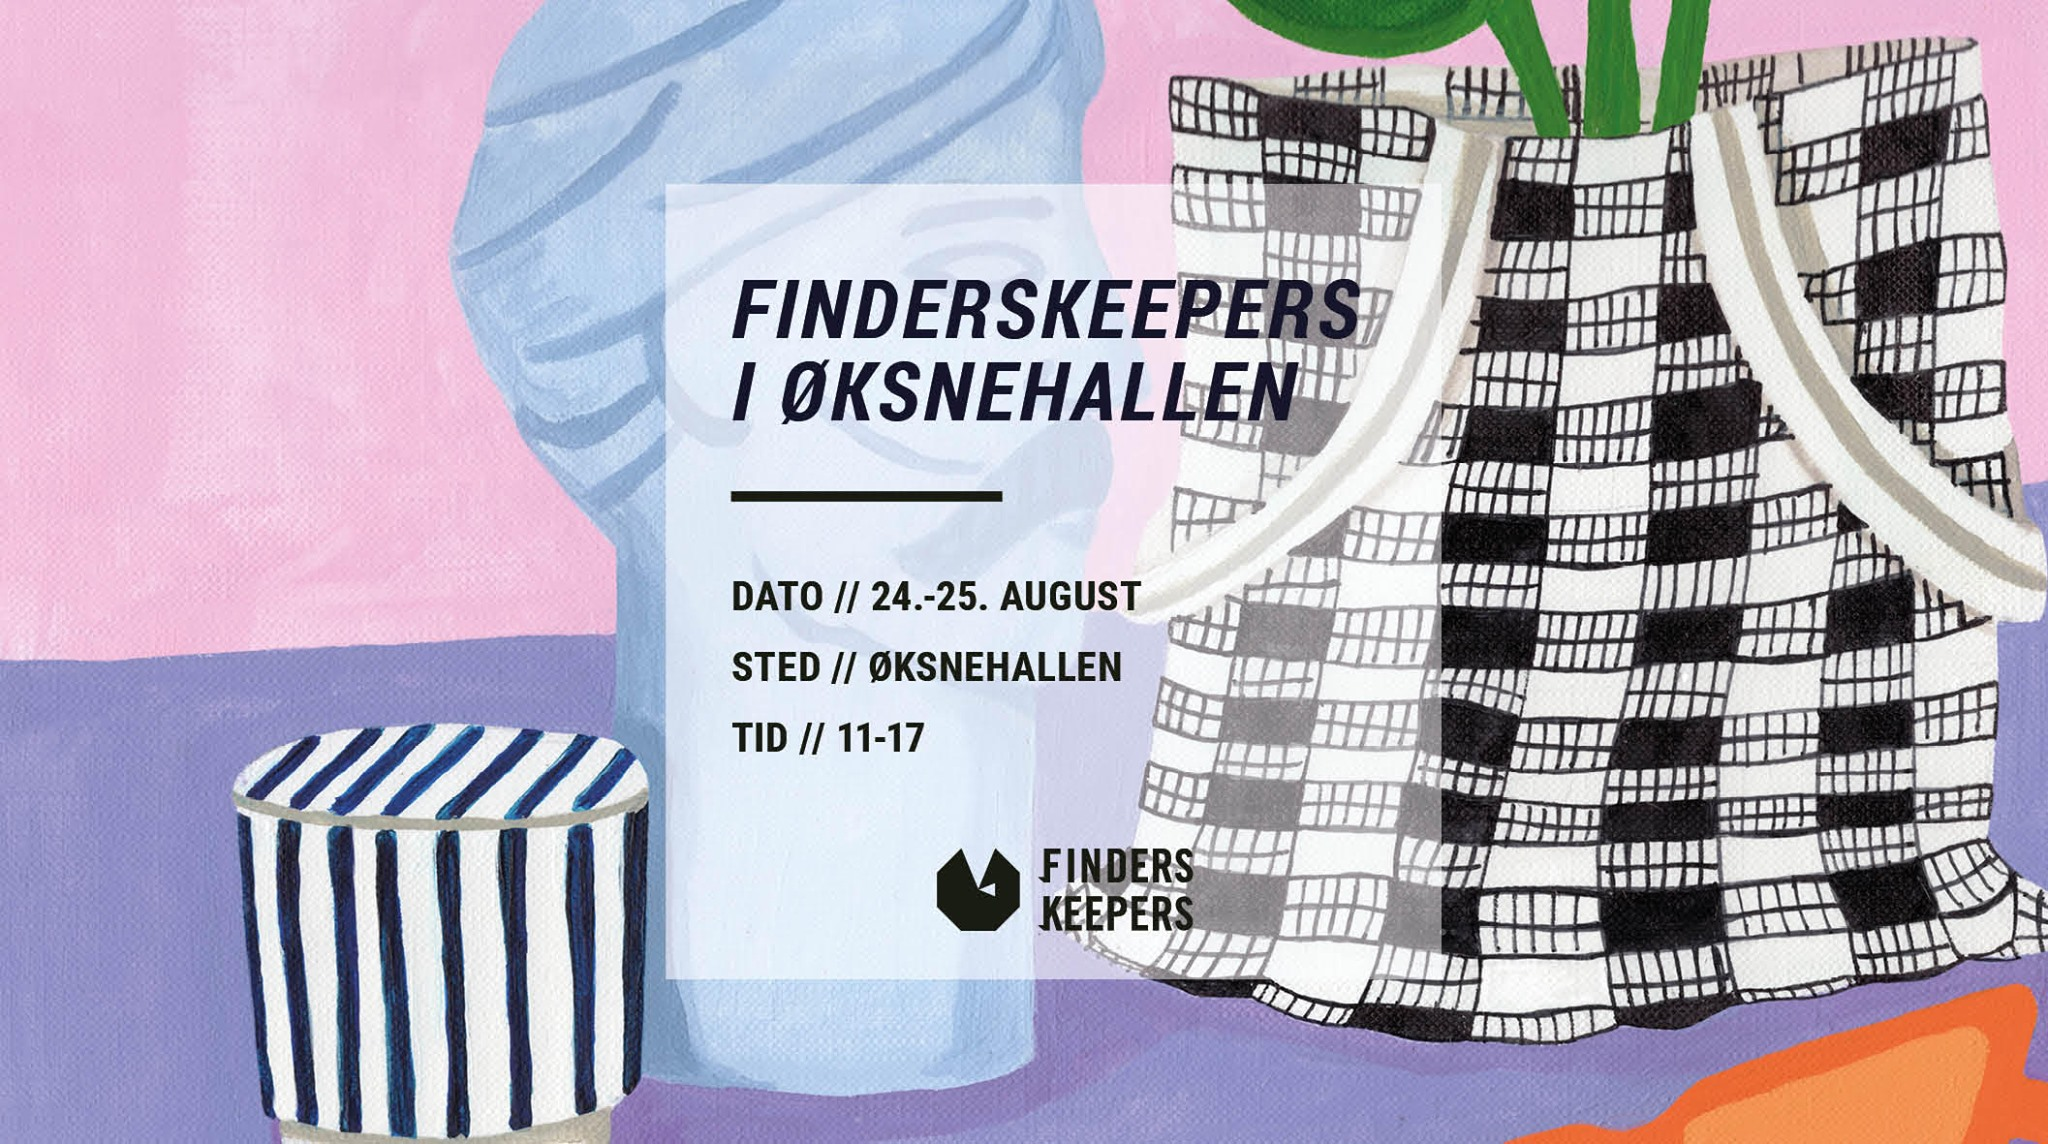 Save the Date! August 24-25th from 11:00-17:00 appearing in 'Finders Keepers' design market. Location: Øksnehallen, Copenhagen. Time: 11:00-17:00  🗺    https://finderskeepers.dk/designer/elasticities-2/